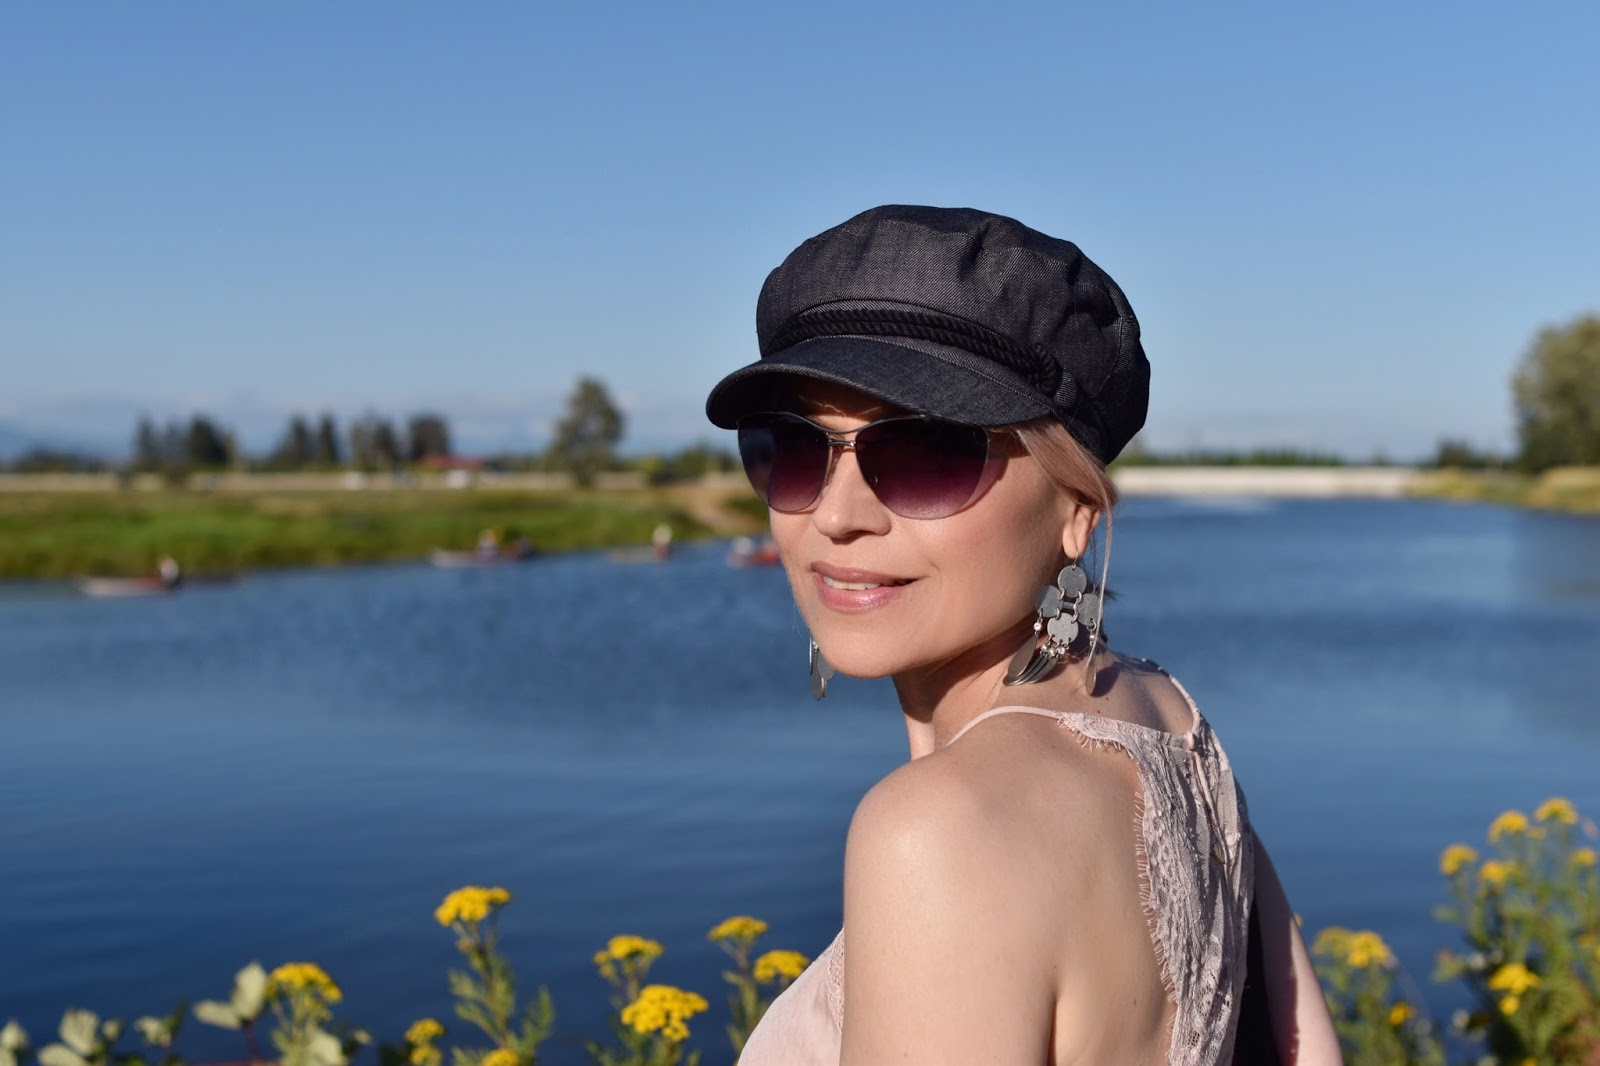 Monika Faulkner personal style inspiration - pink lace-trimmed camisole, wire-frame sunglasses, baker boy cap